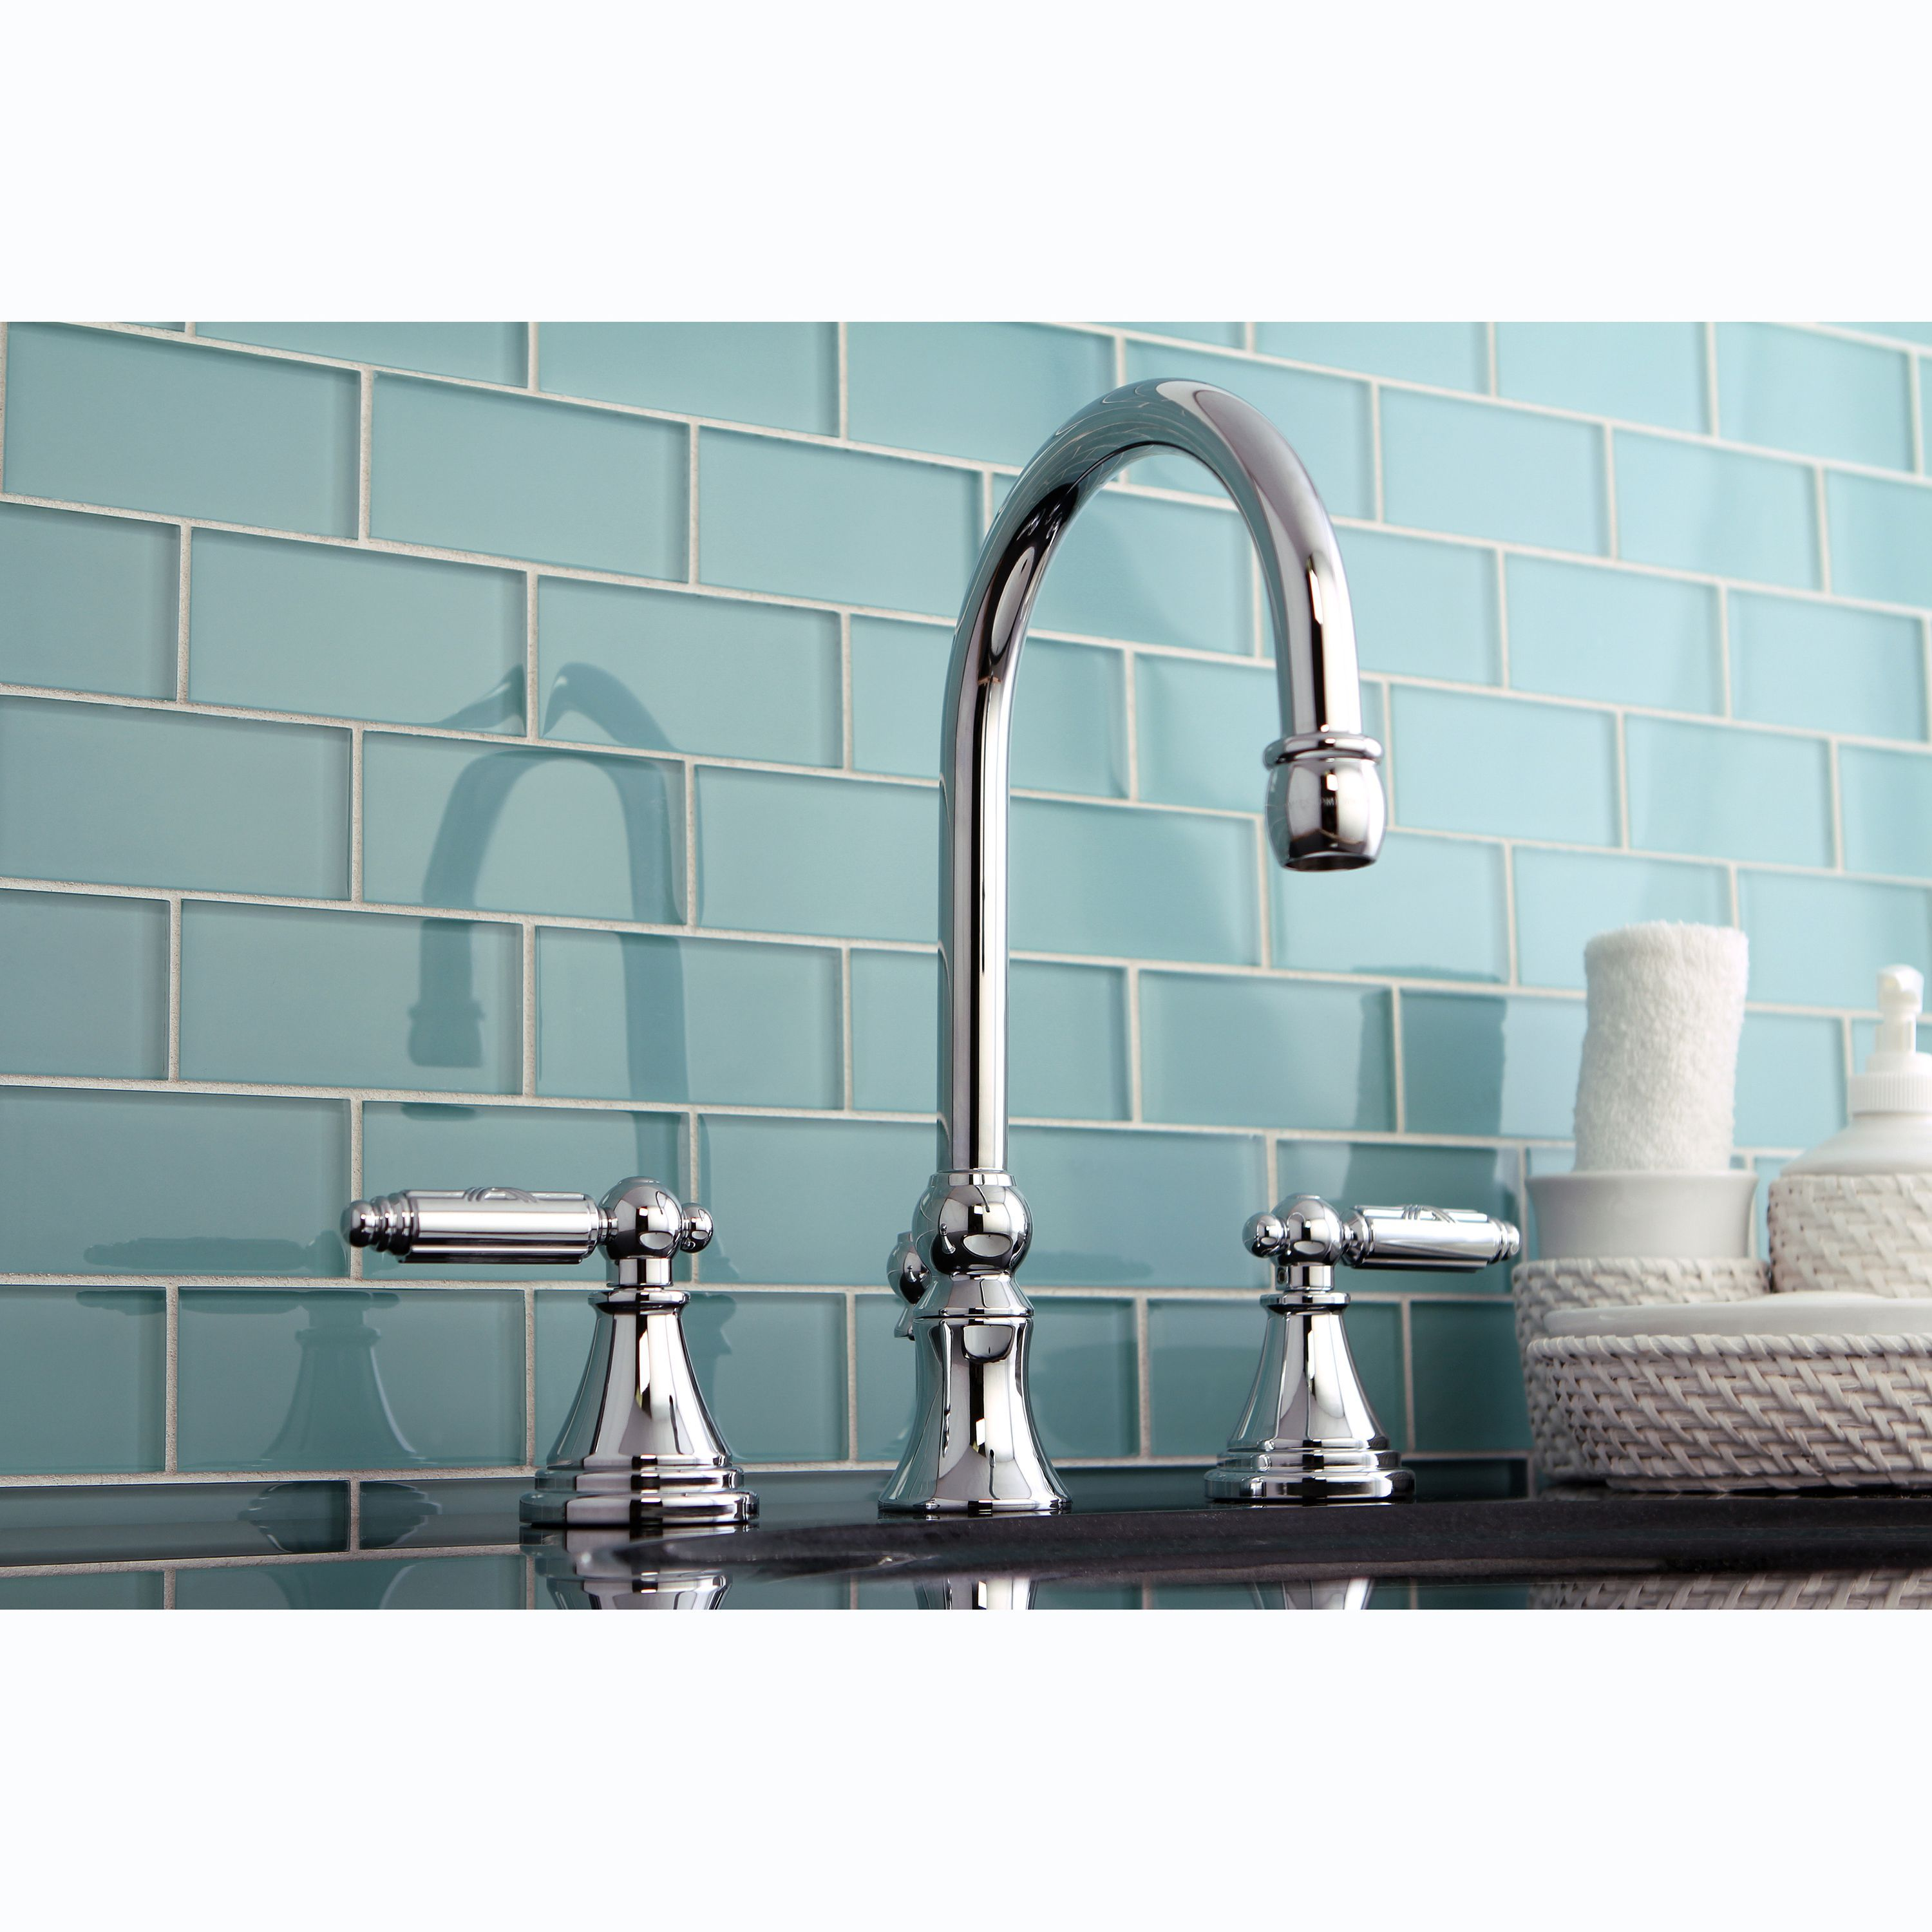 Three-Hole Chrome Widespread Bathroom Faucet - Overstock™ Shopping ...